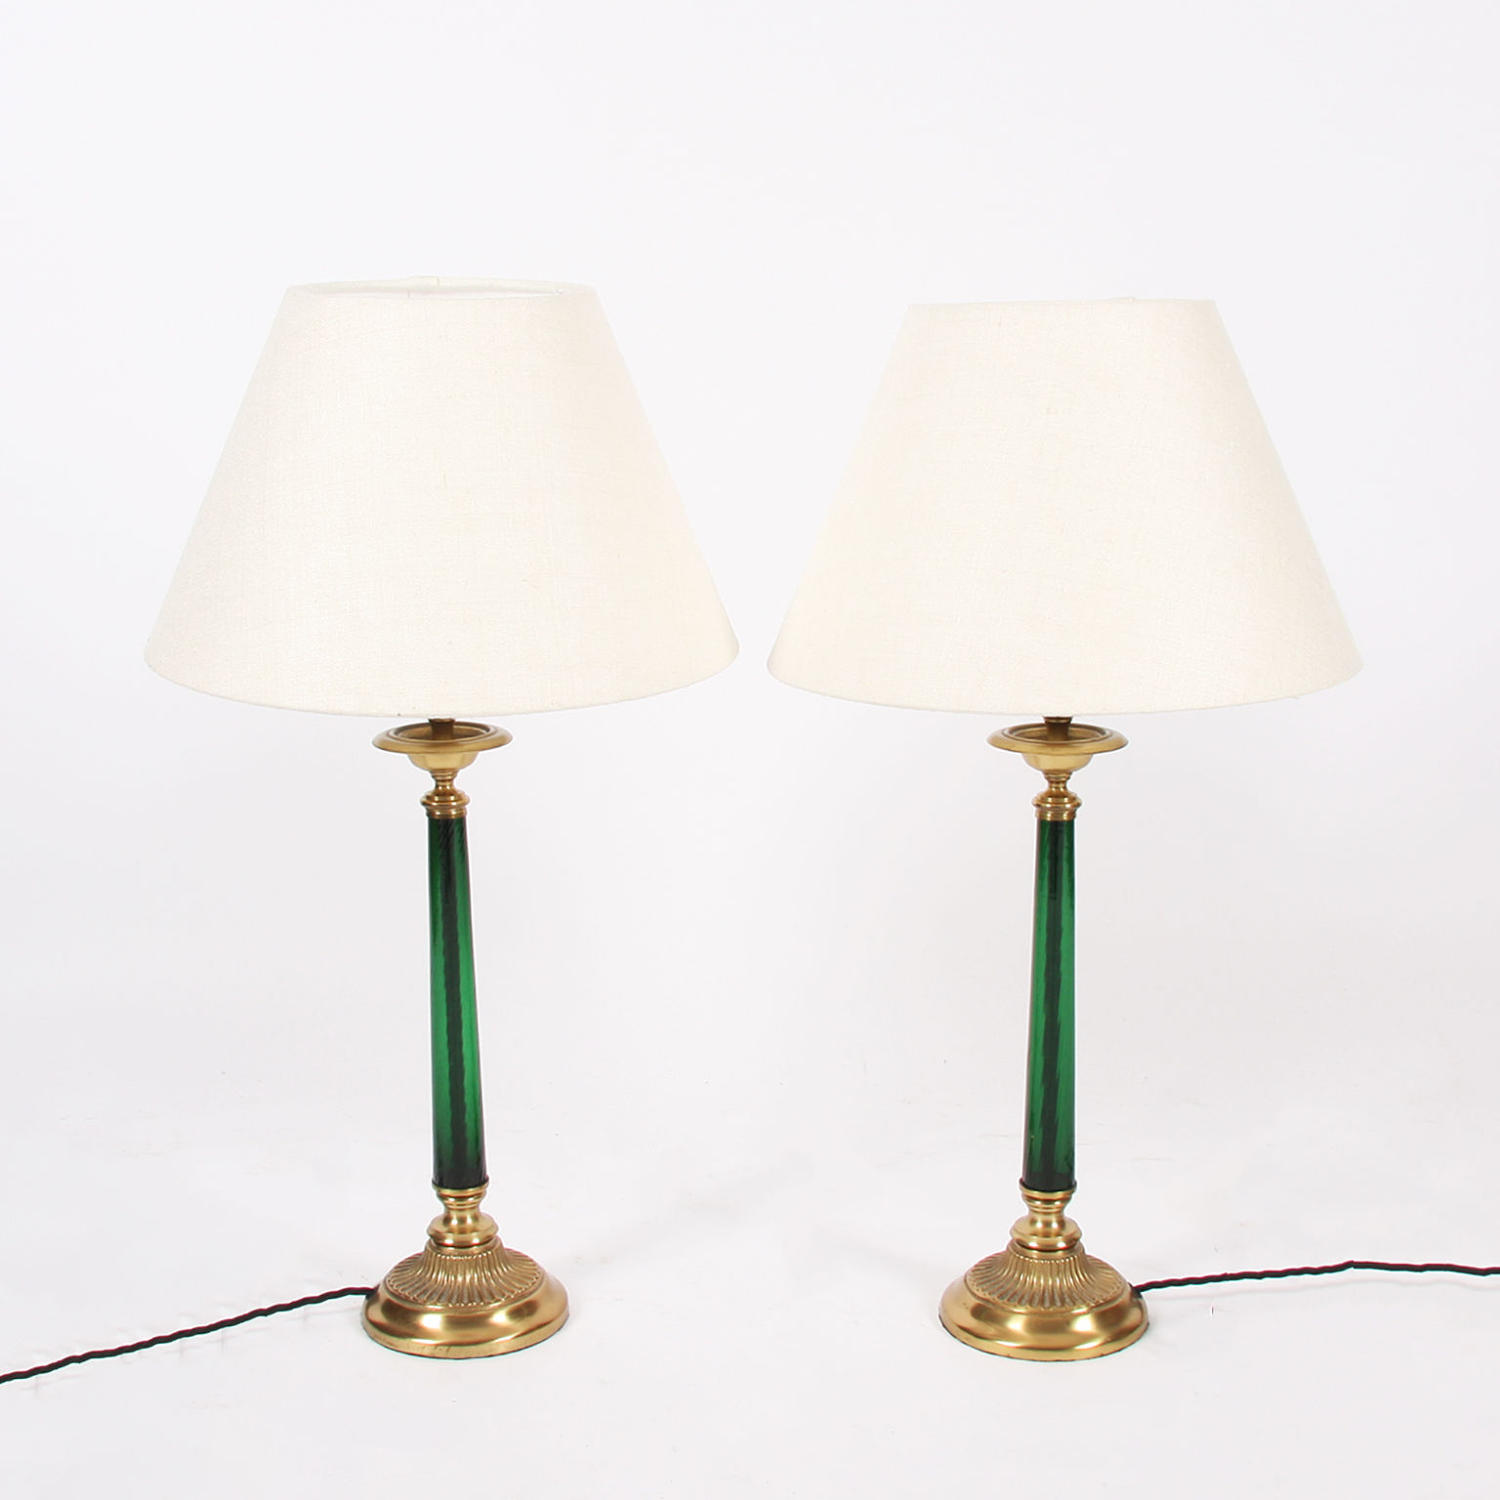 Pair of Glass and Brass Table Lamps